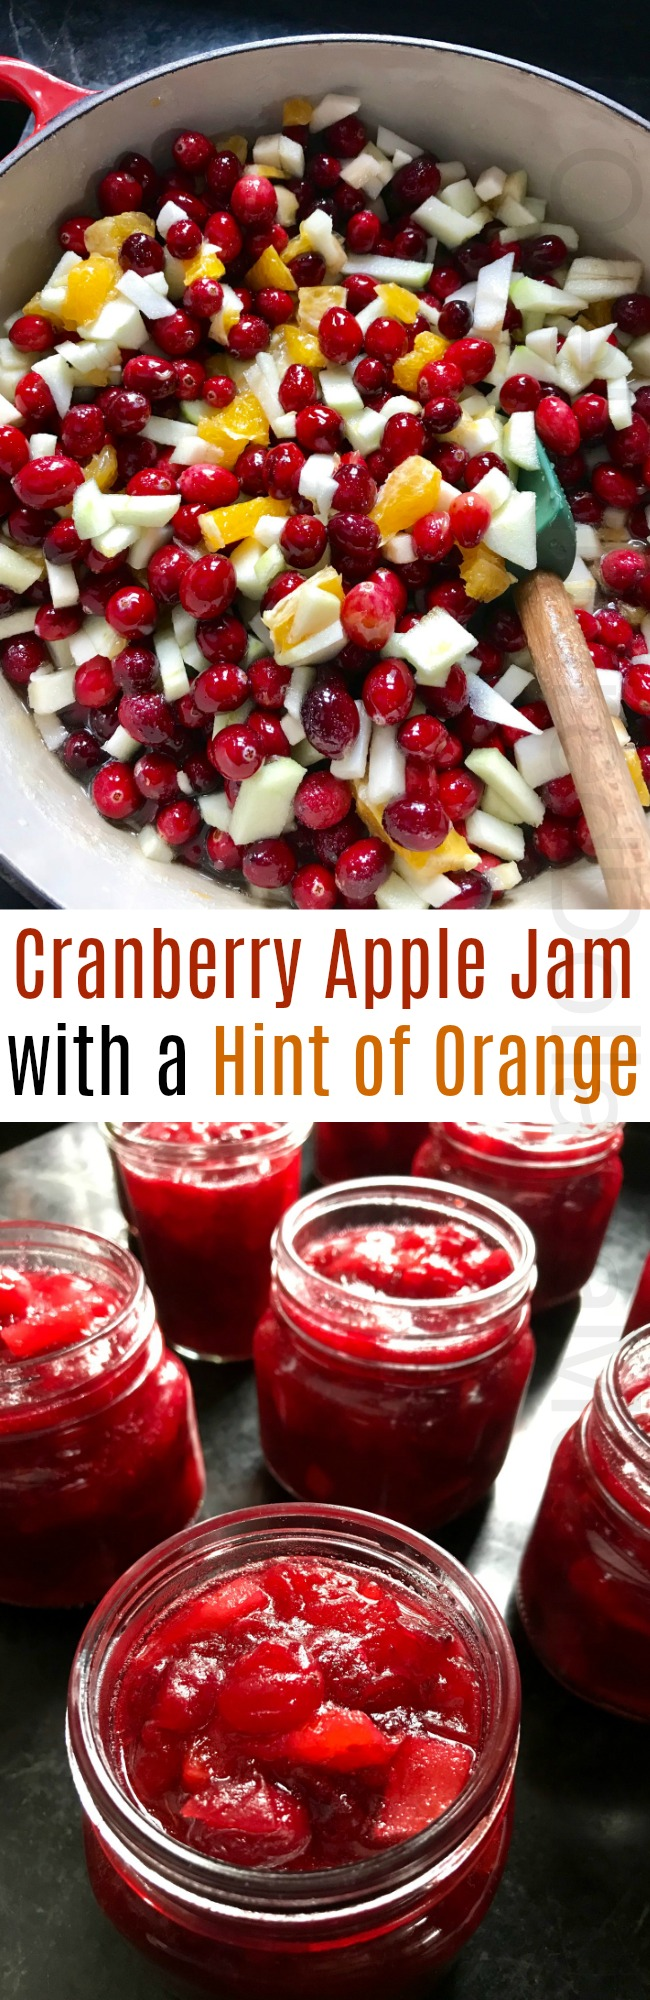 Cranberry Apple Jam with a Hint of Orange